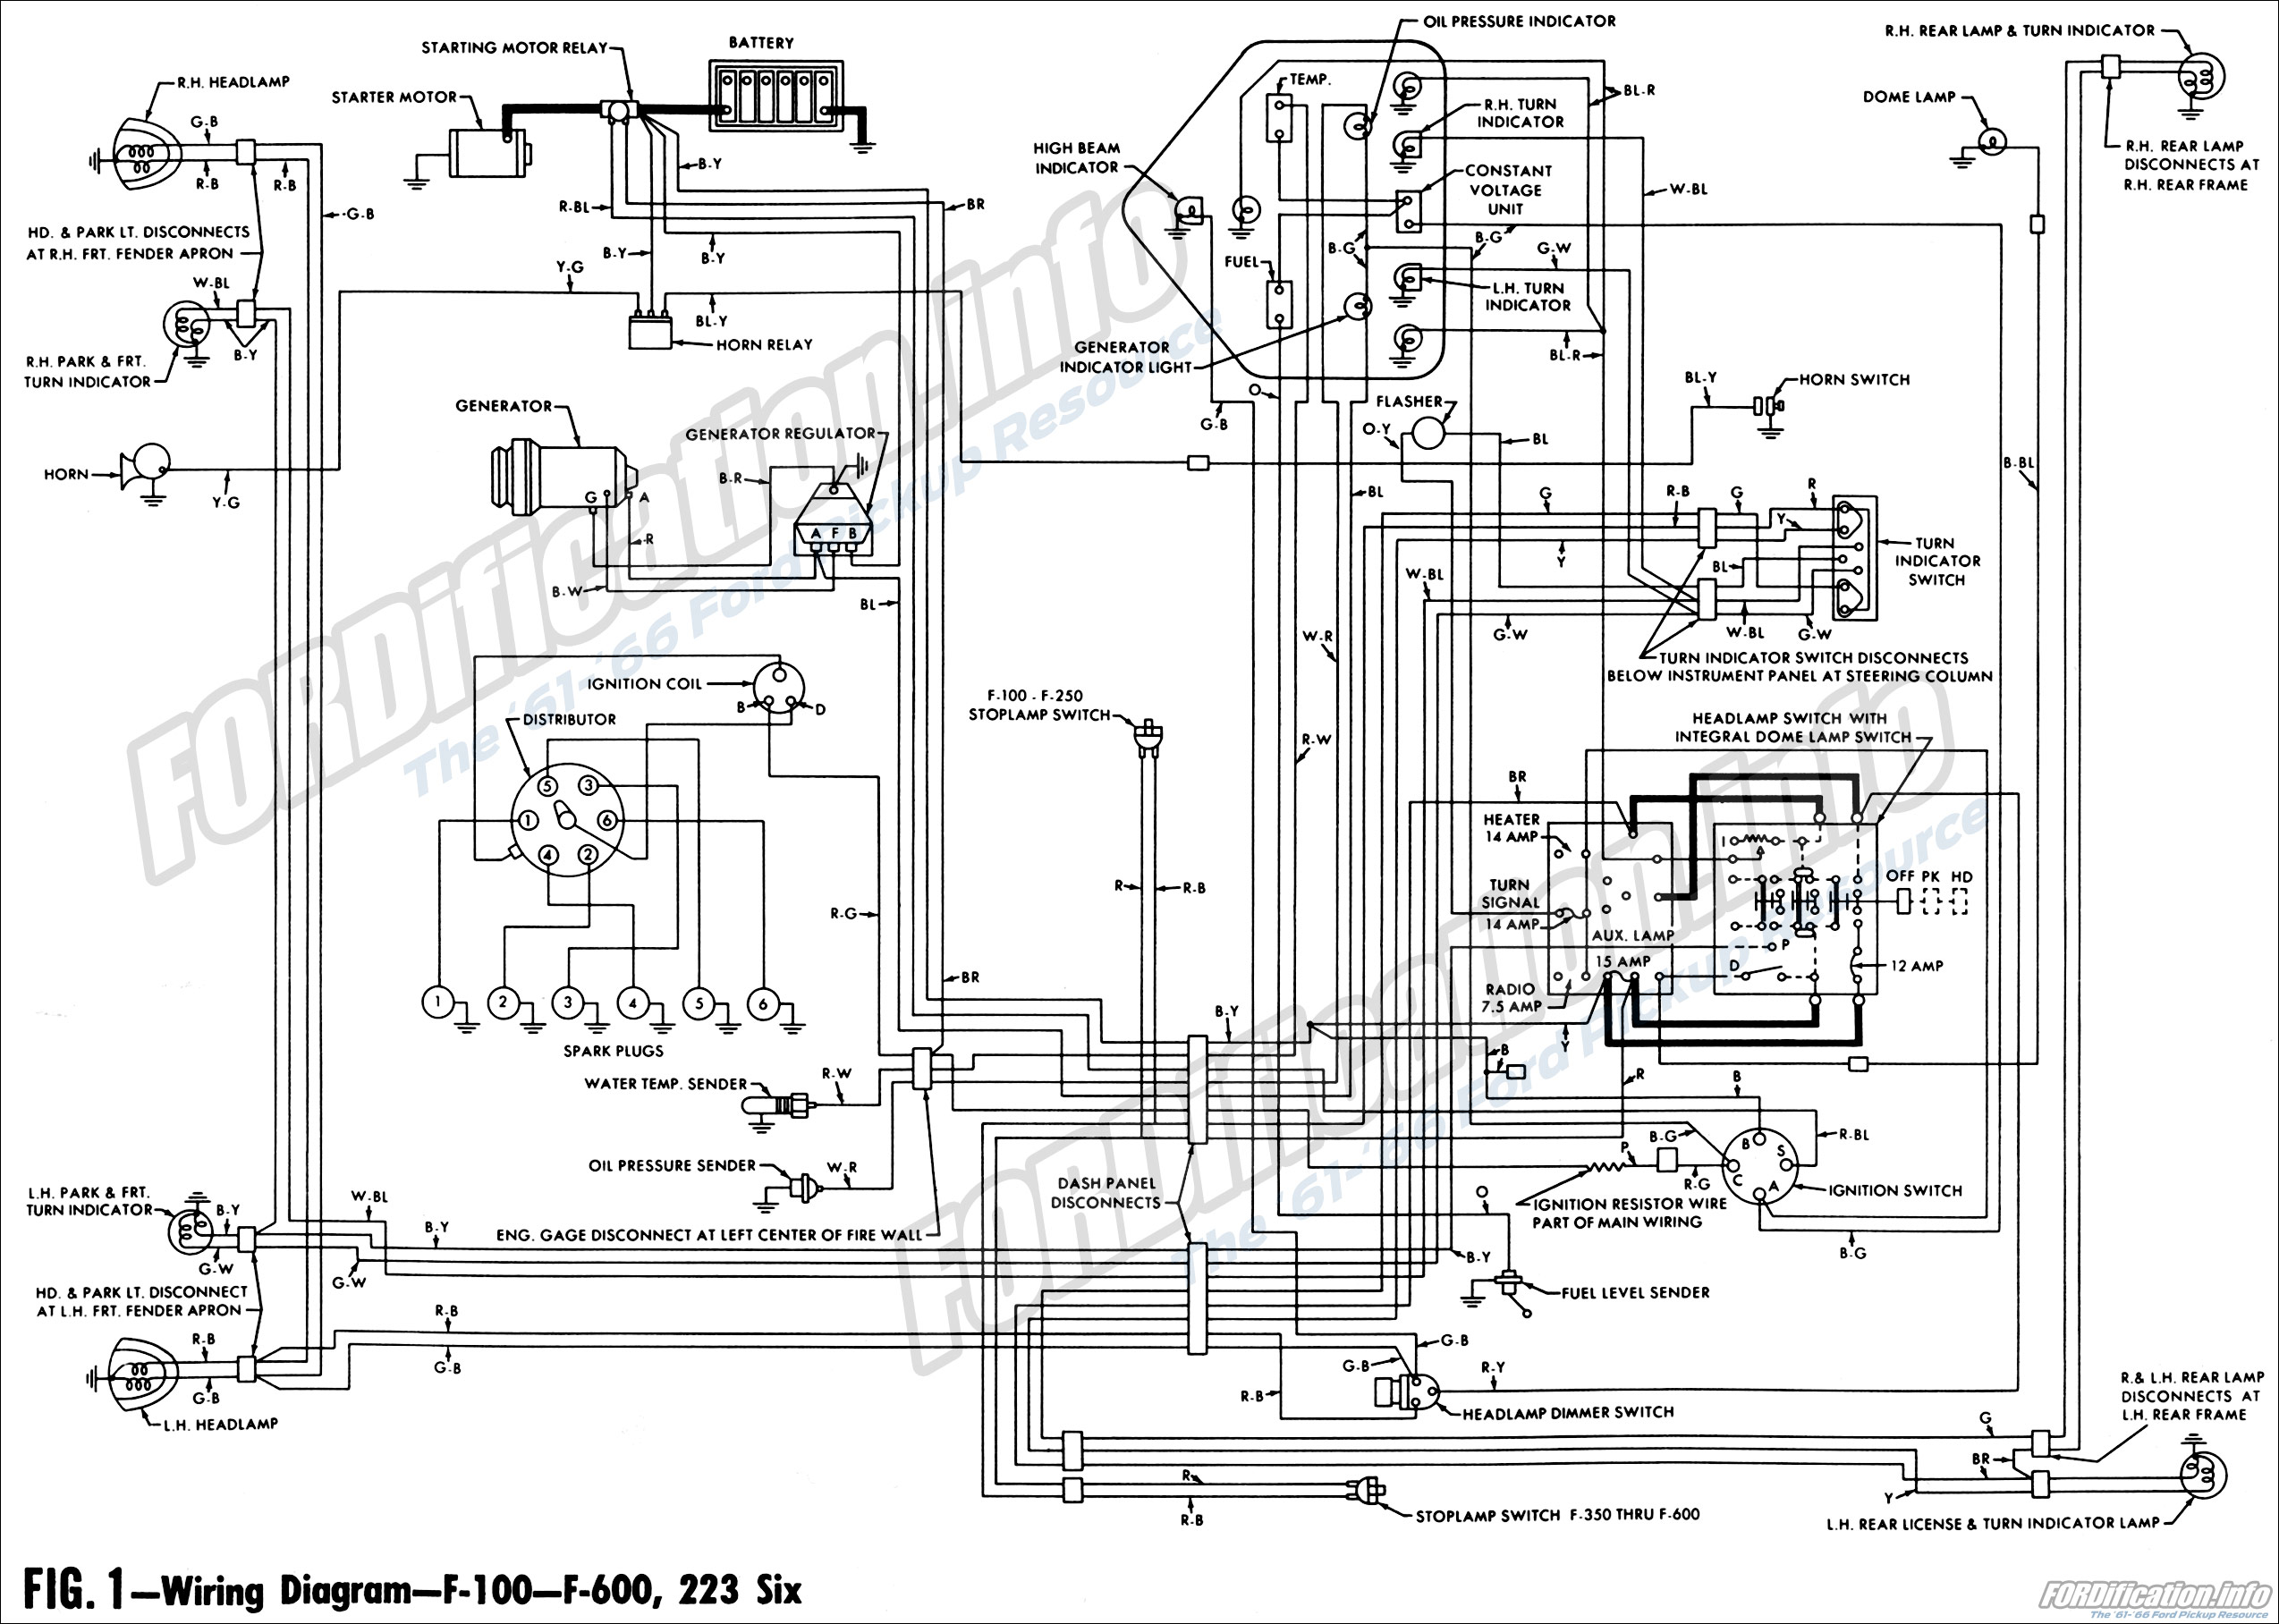 DIAGRAM] 1968 Ford F100 Ignition Wiring Diagram FULL Version HD Quality Wiring  Diagram - CIRCULAR-DIAGRAM.DISCOCLASSIC.ITDiagram Database - discoclassic.it